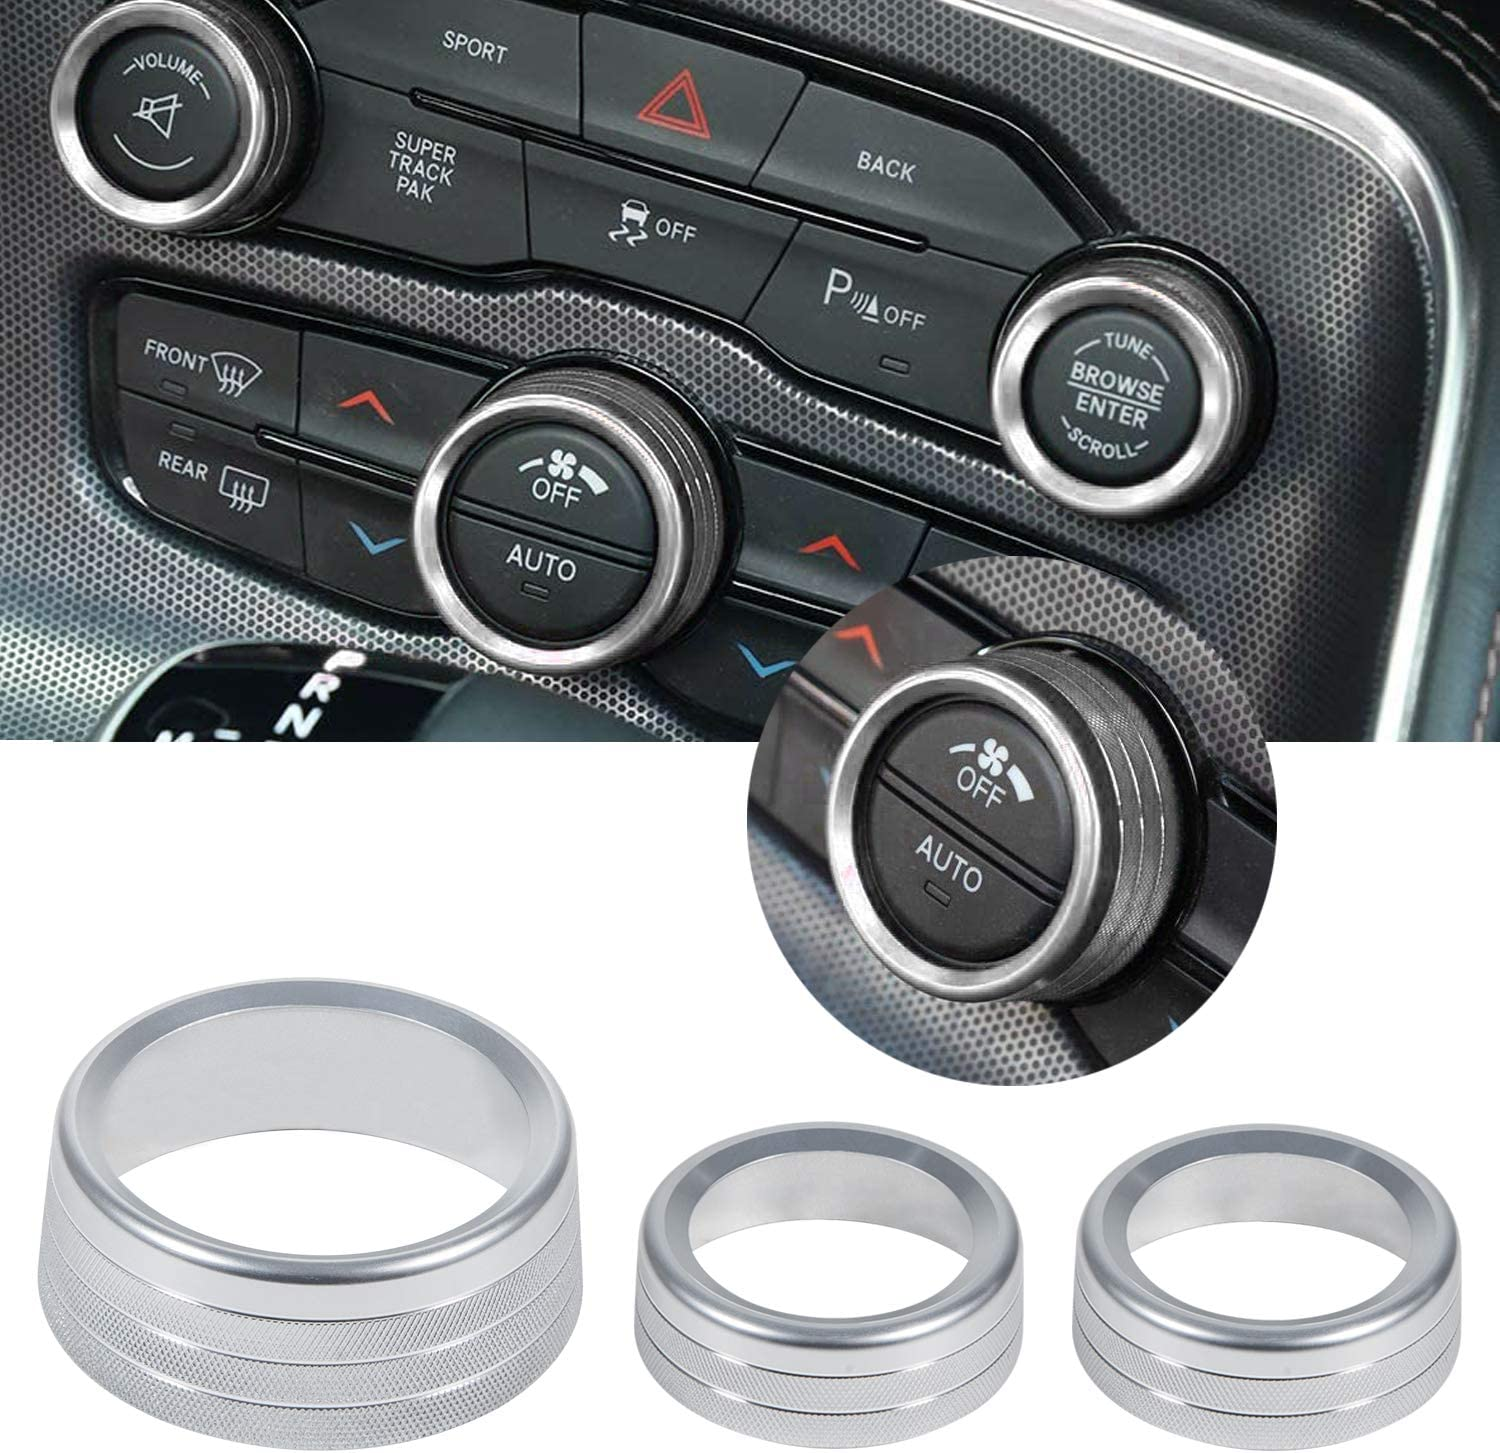 Silver 3pcs Audio Air Conditioner Switch CD Button Knob Cover Decoration Twist Switch Ring Trim fit for 2015-2020 Dodge Challenger Charger Durango,Chrysler 300 300s